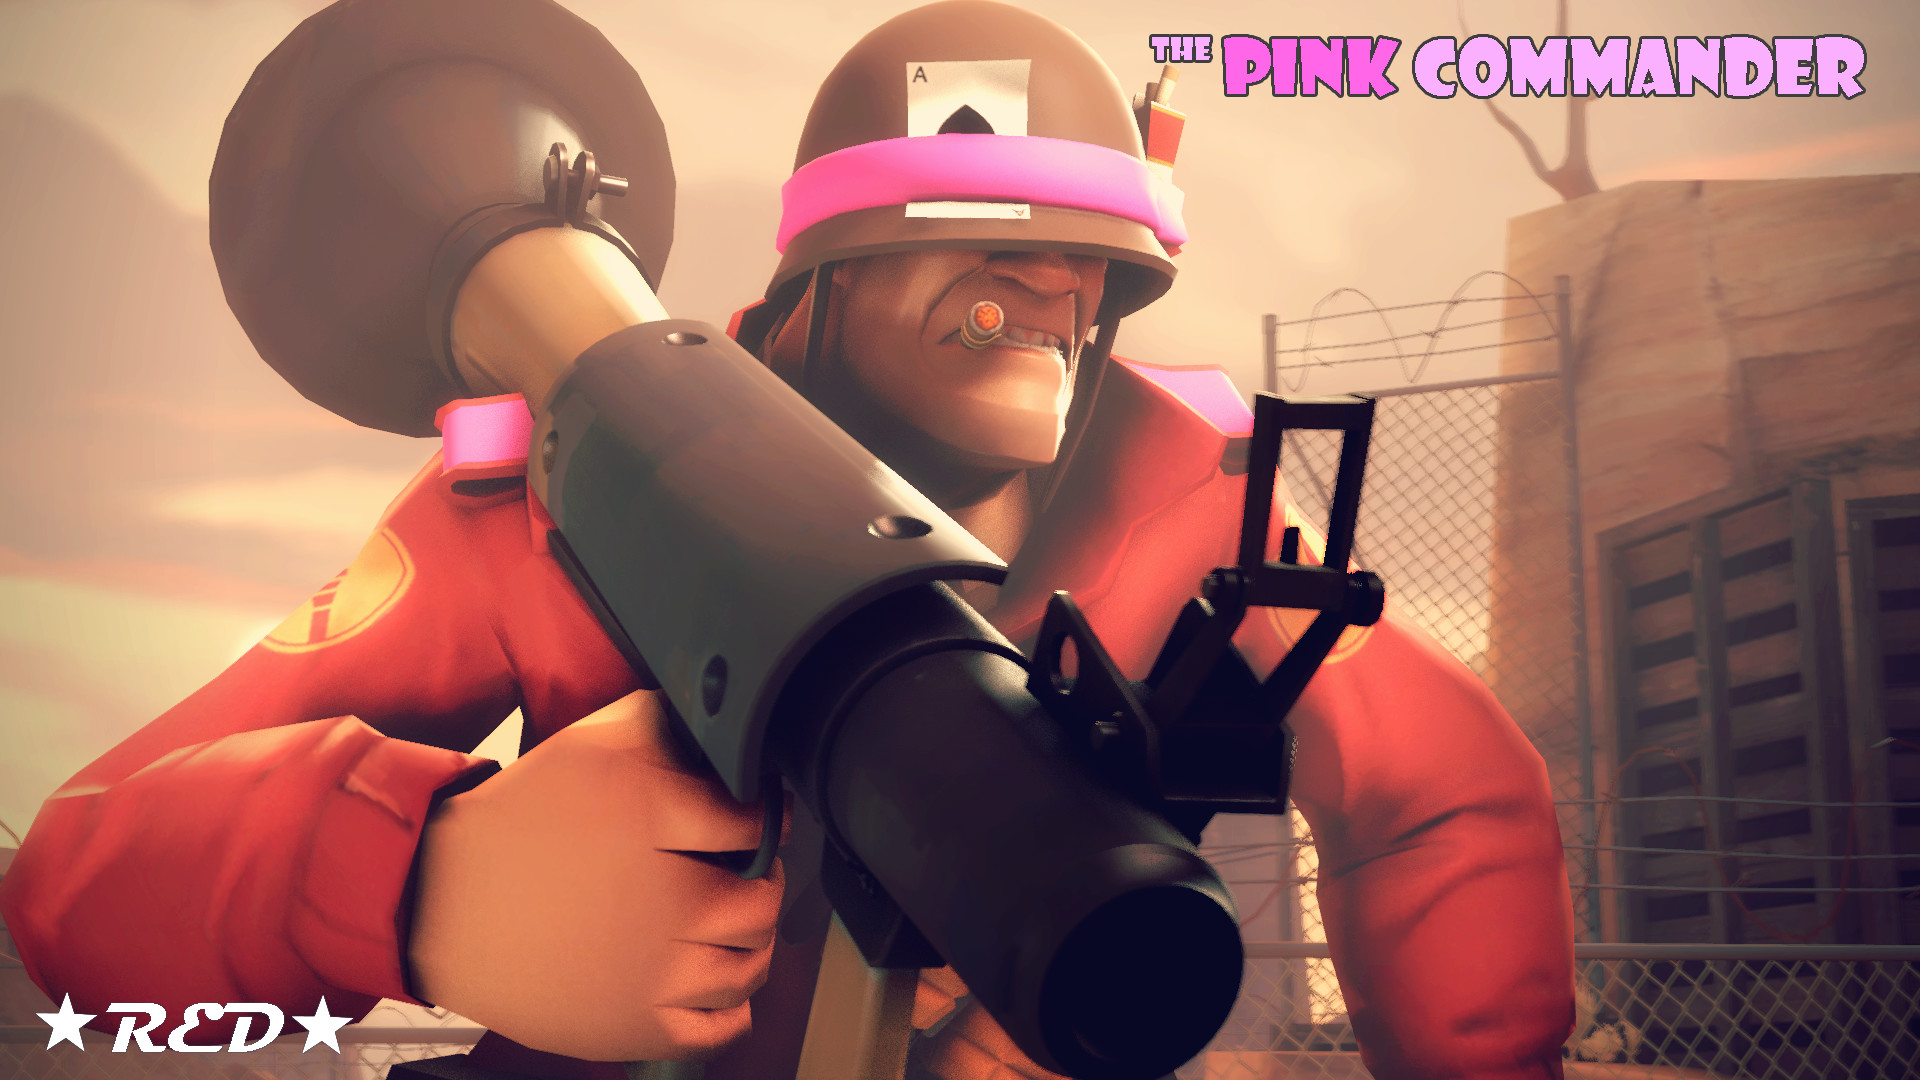 1920x1080 ... TF2 Loadout - Soldier (The Pink Comander) by nrgtfc